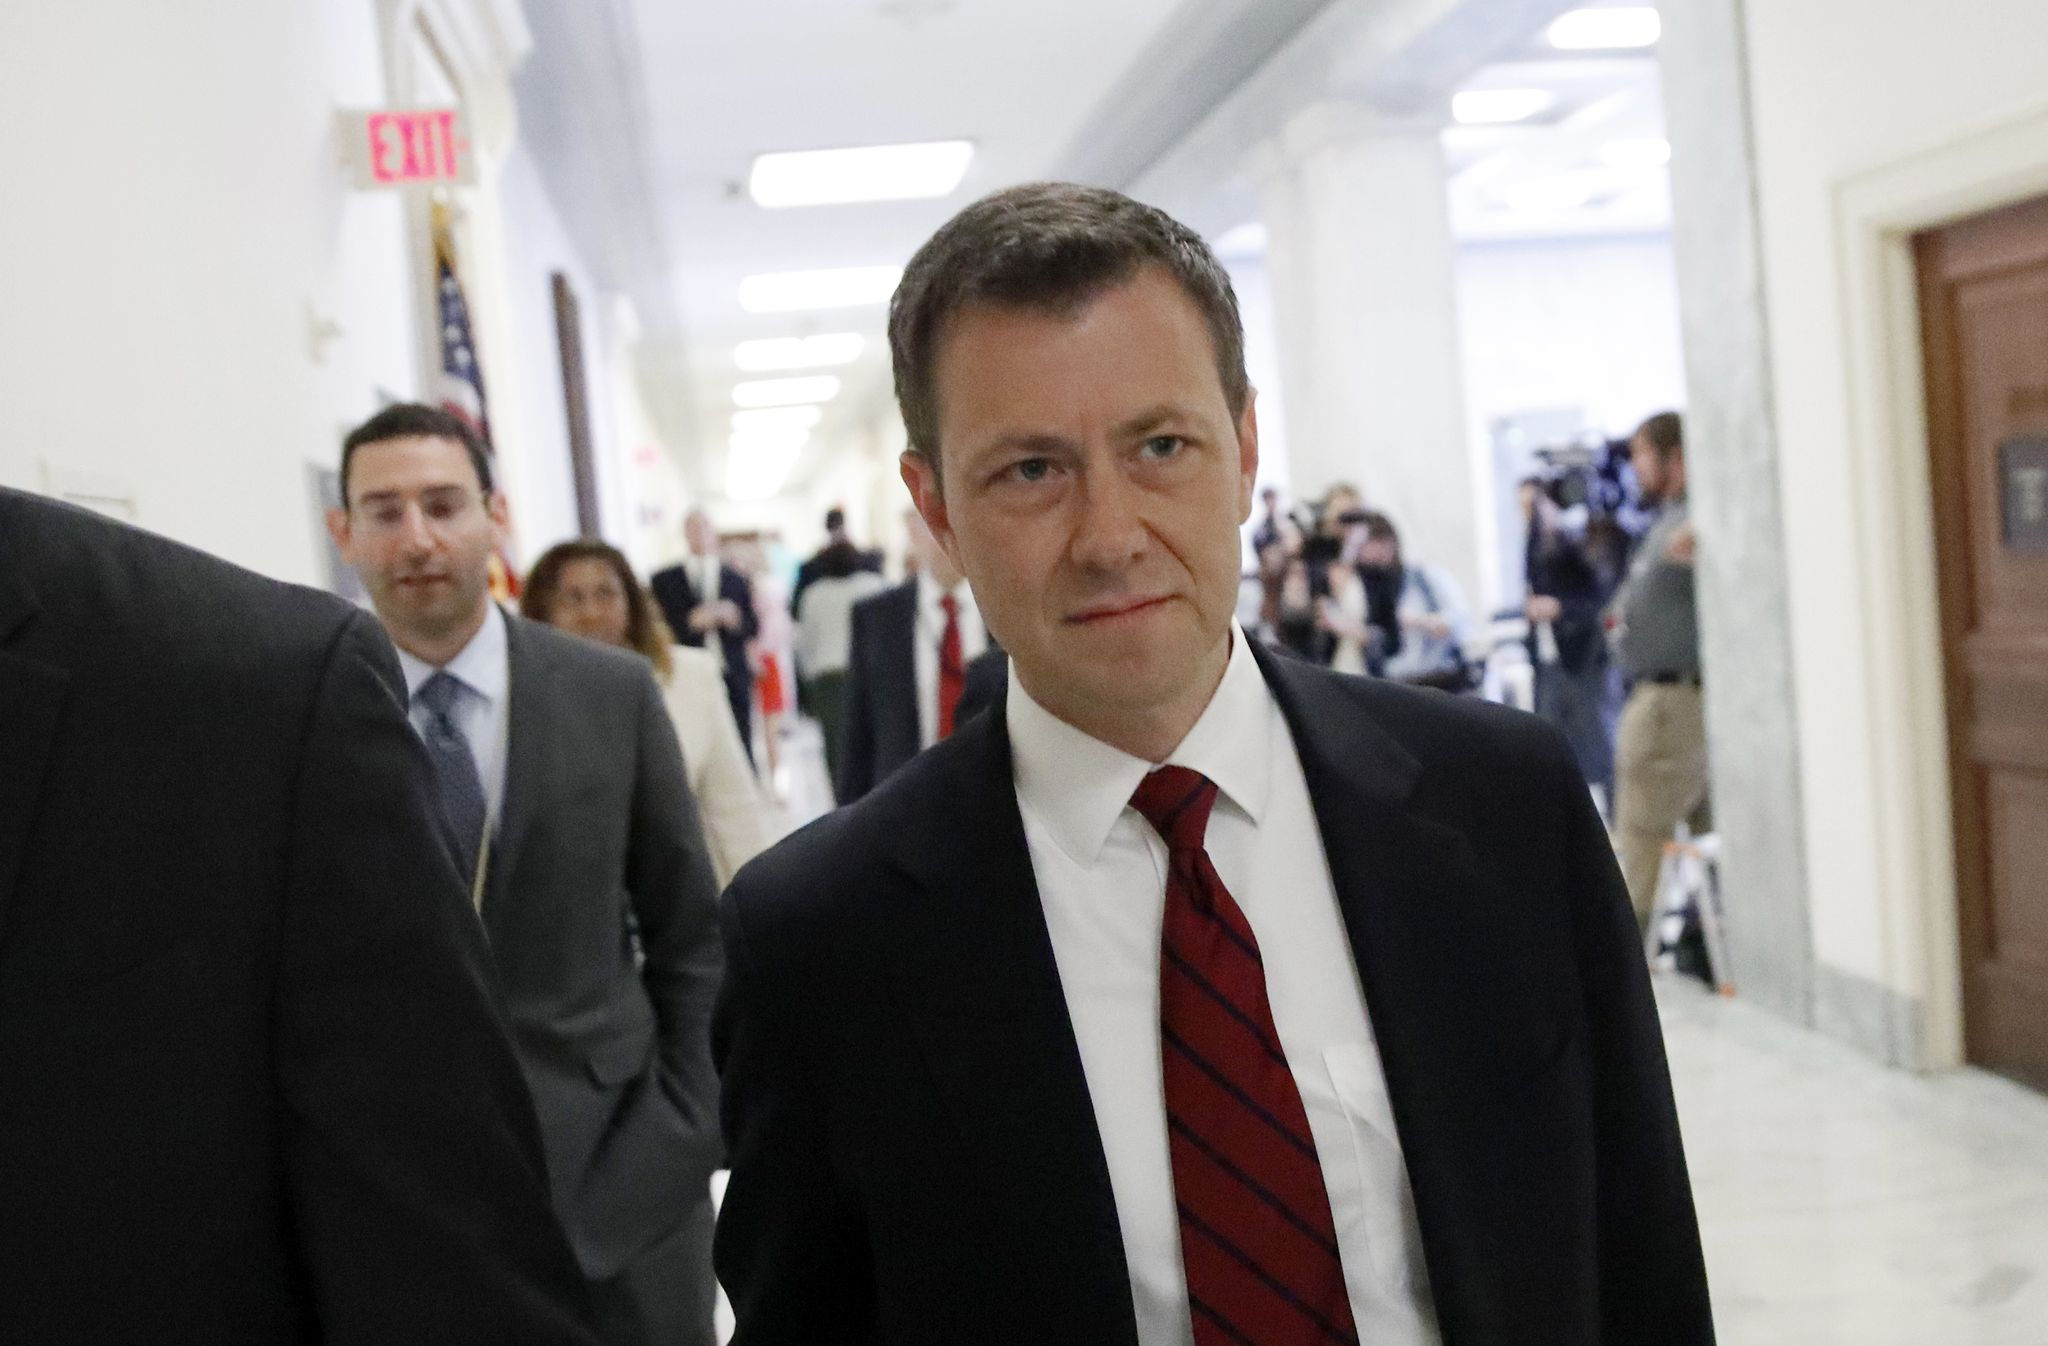 Peter Strzok, FBI agent: My work has never been tainted by political bias